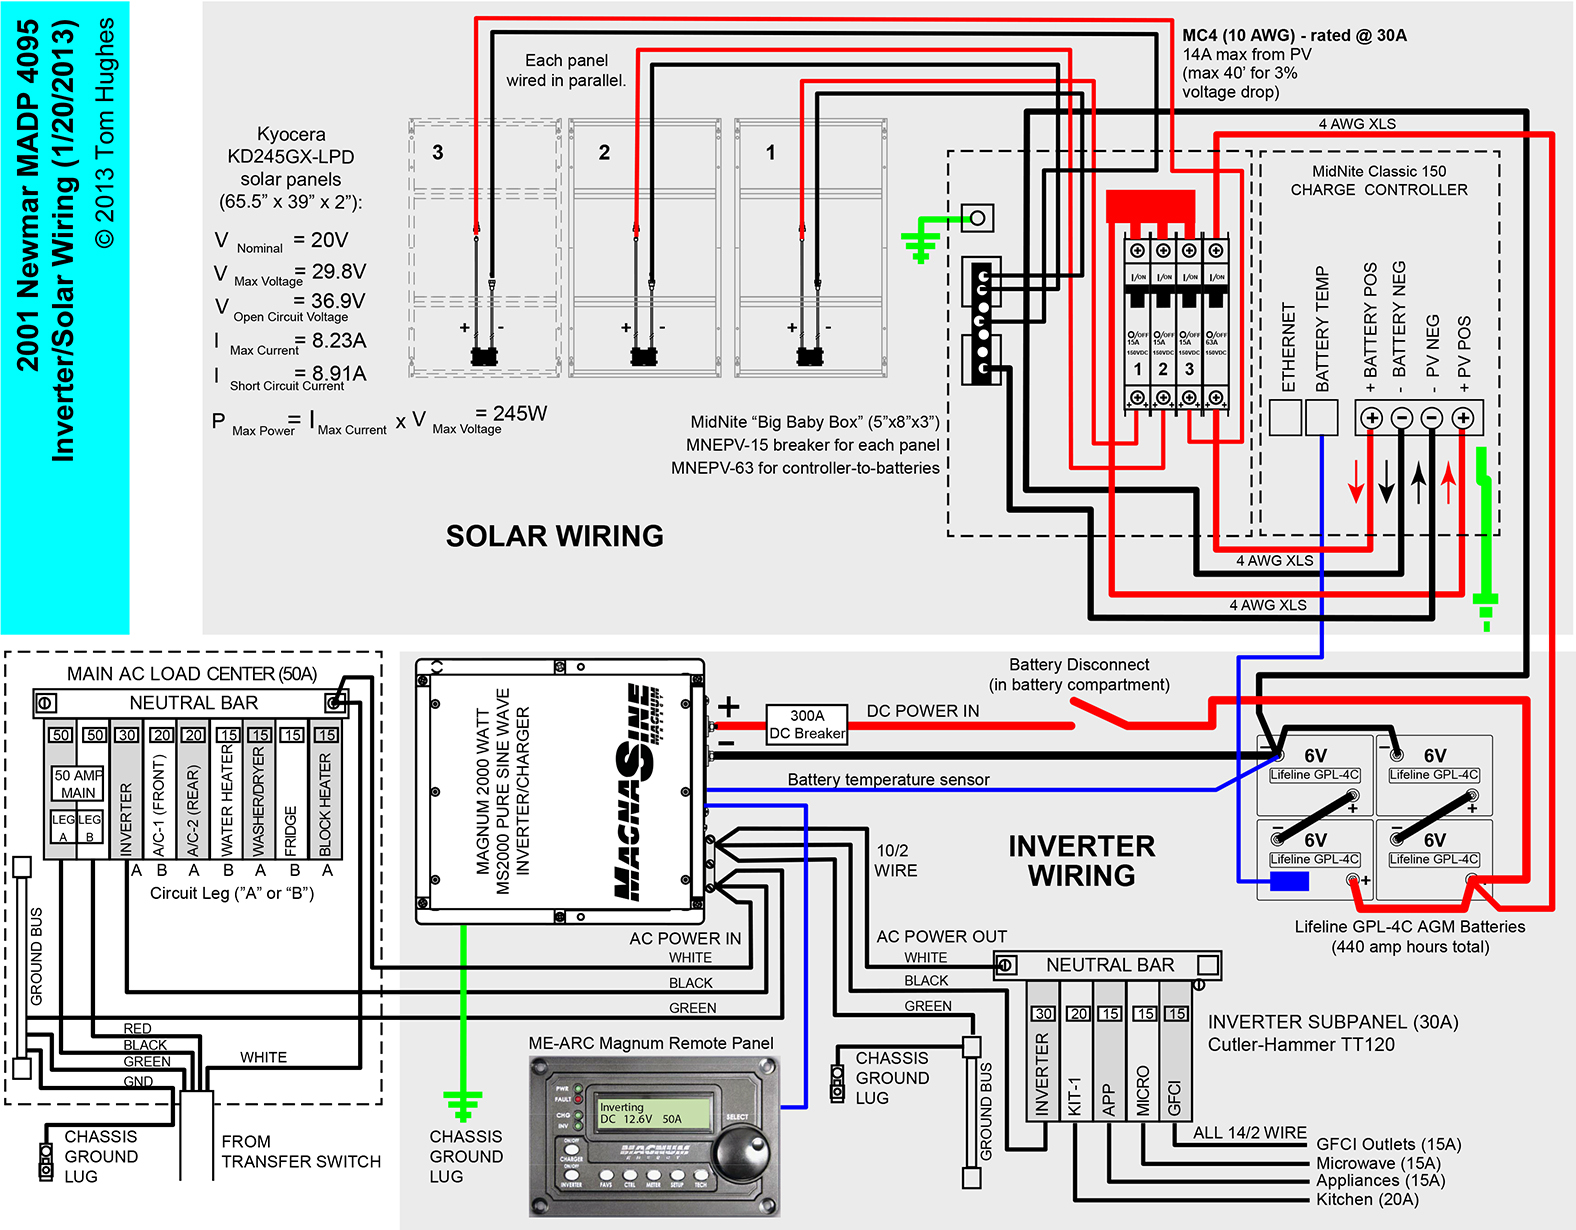 ms2000_newmar_inverter_wiring_01_20_2013 wiring diagram of inverter sma wiring diagram \u2022 wiring diagrams home inverter wiring schematic at soozxer.org